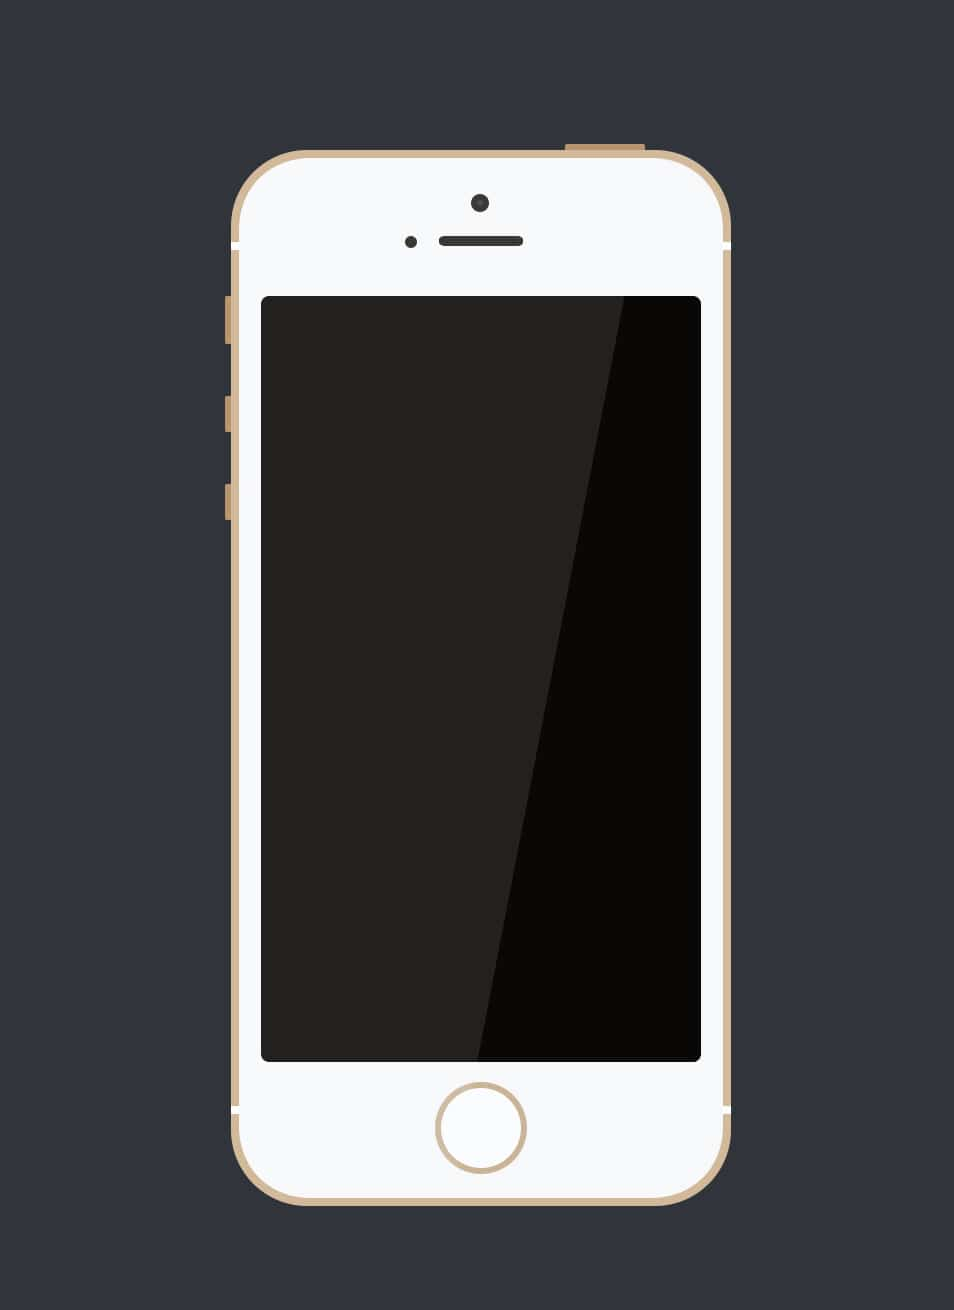 A Simple iPhone 5s (PSD)